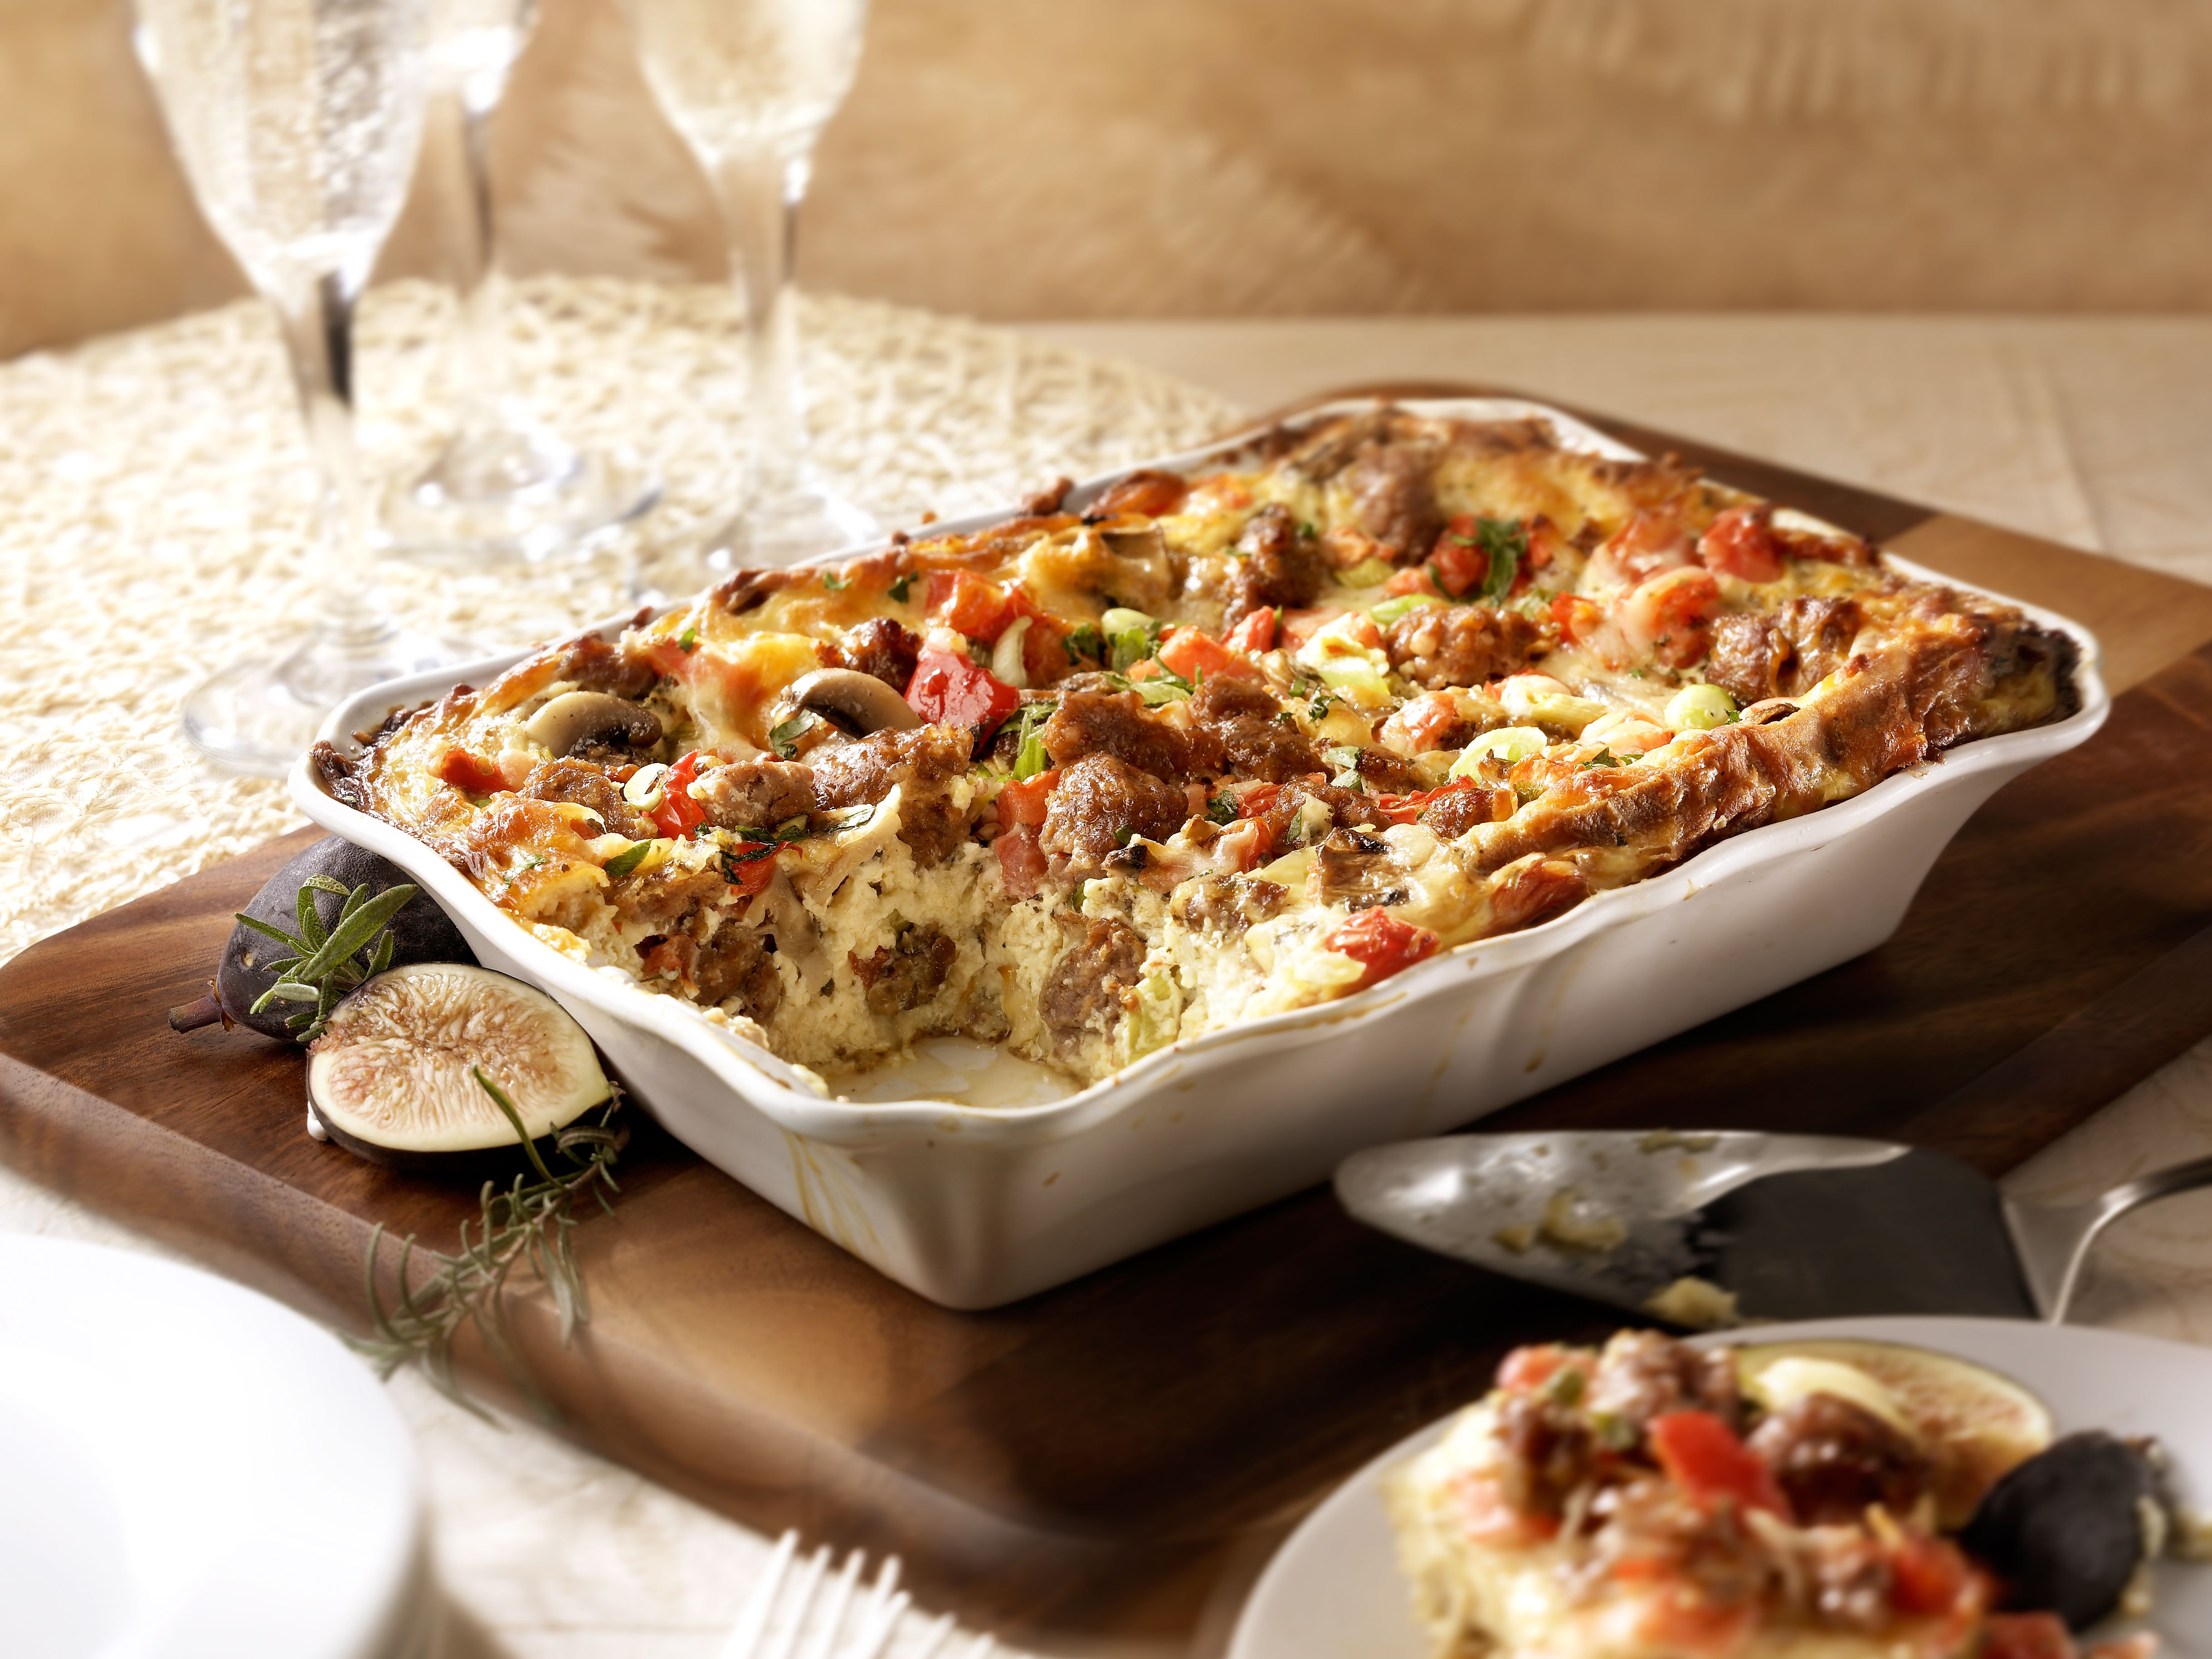 Lemon lime soda pound cake recipe sicilian sausage and egg lemon lime sicilian strata baked egg with hot italian sausage from foodnetwork forumfinder Choice Image